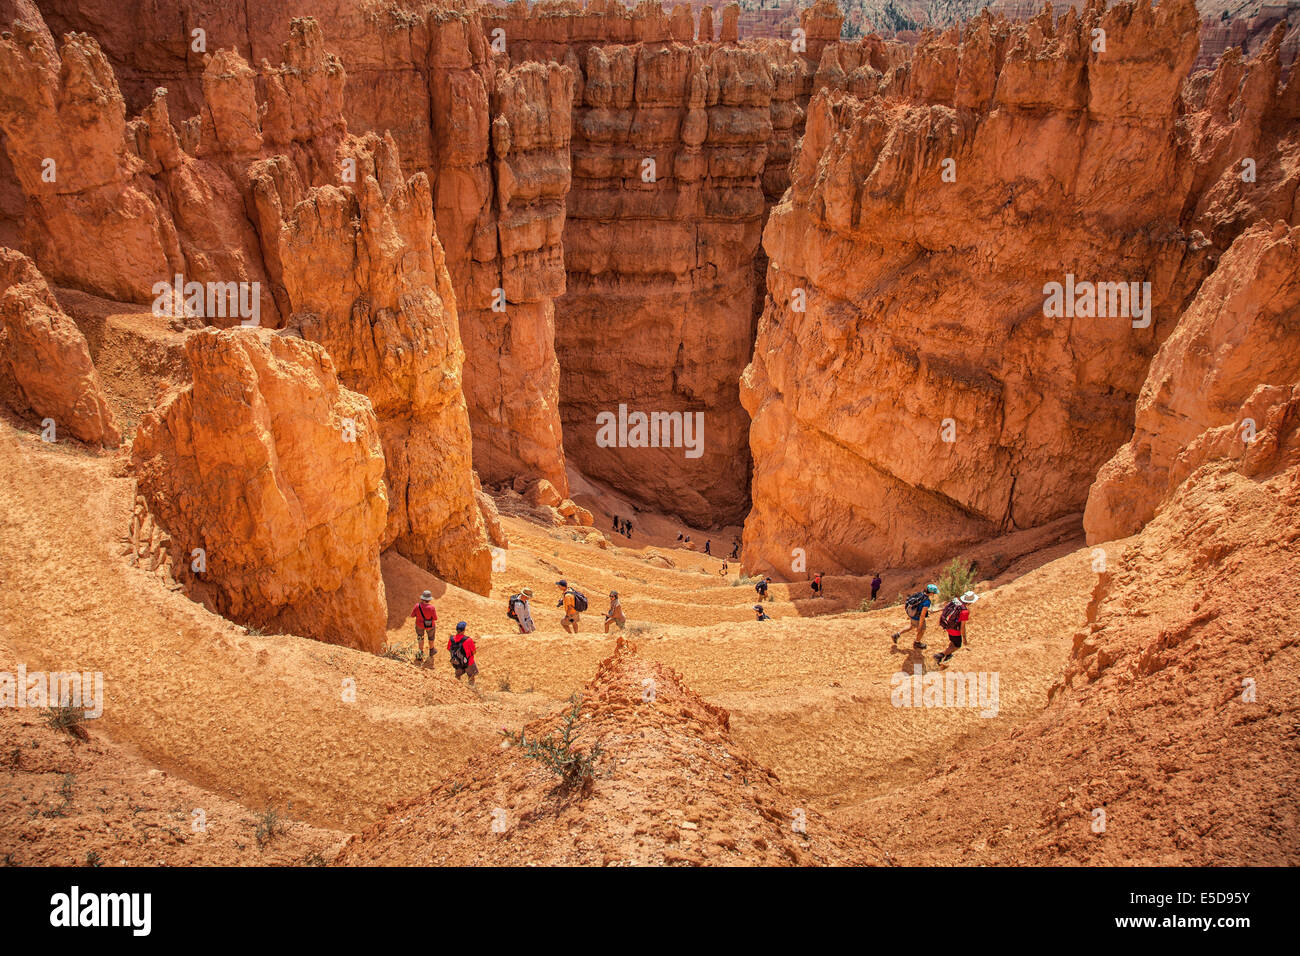 Tourists in the rocky landscape ,Bryce Canyon,Utah,USA - Stock Image